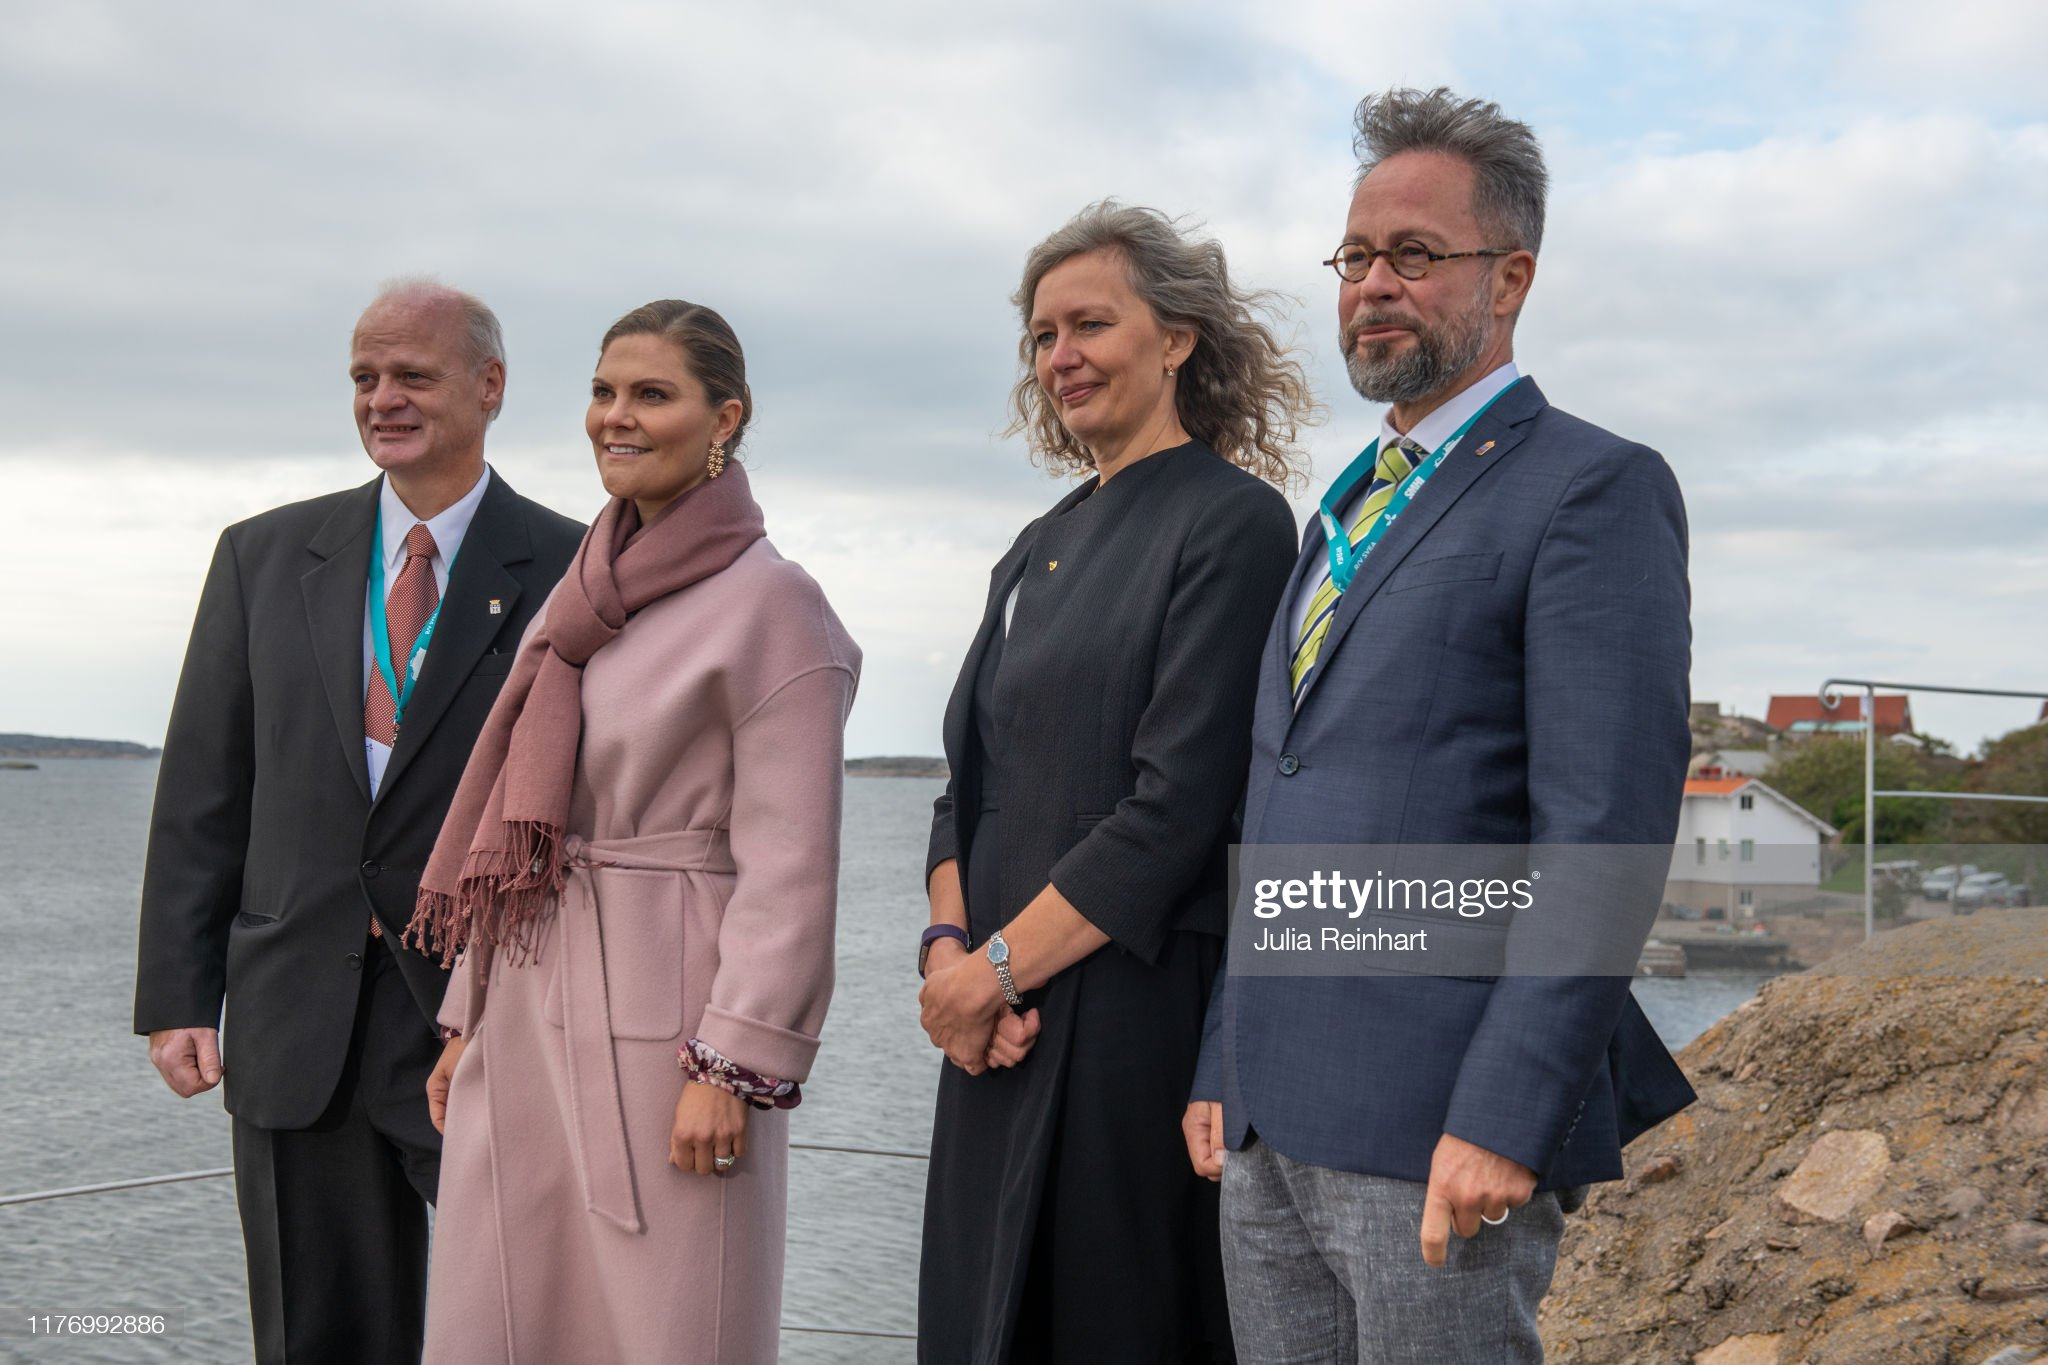 crown-princess-victoria-takes-in-the-scenery-of-lysekil-bay-during-picture-id1176992886